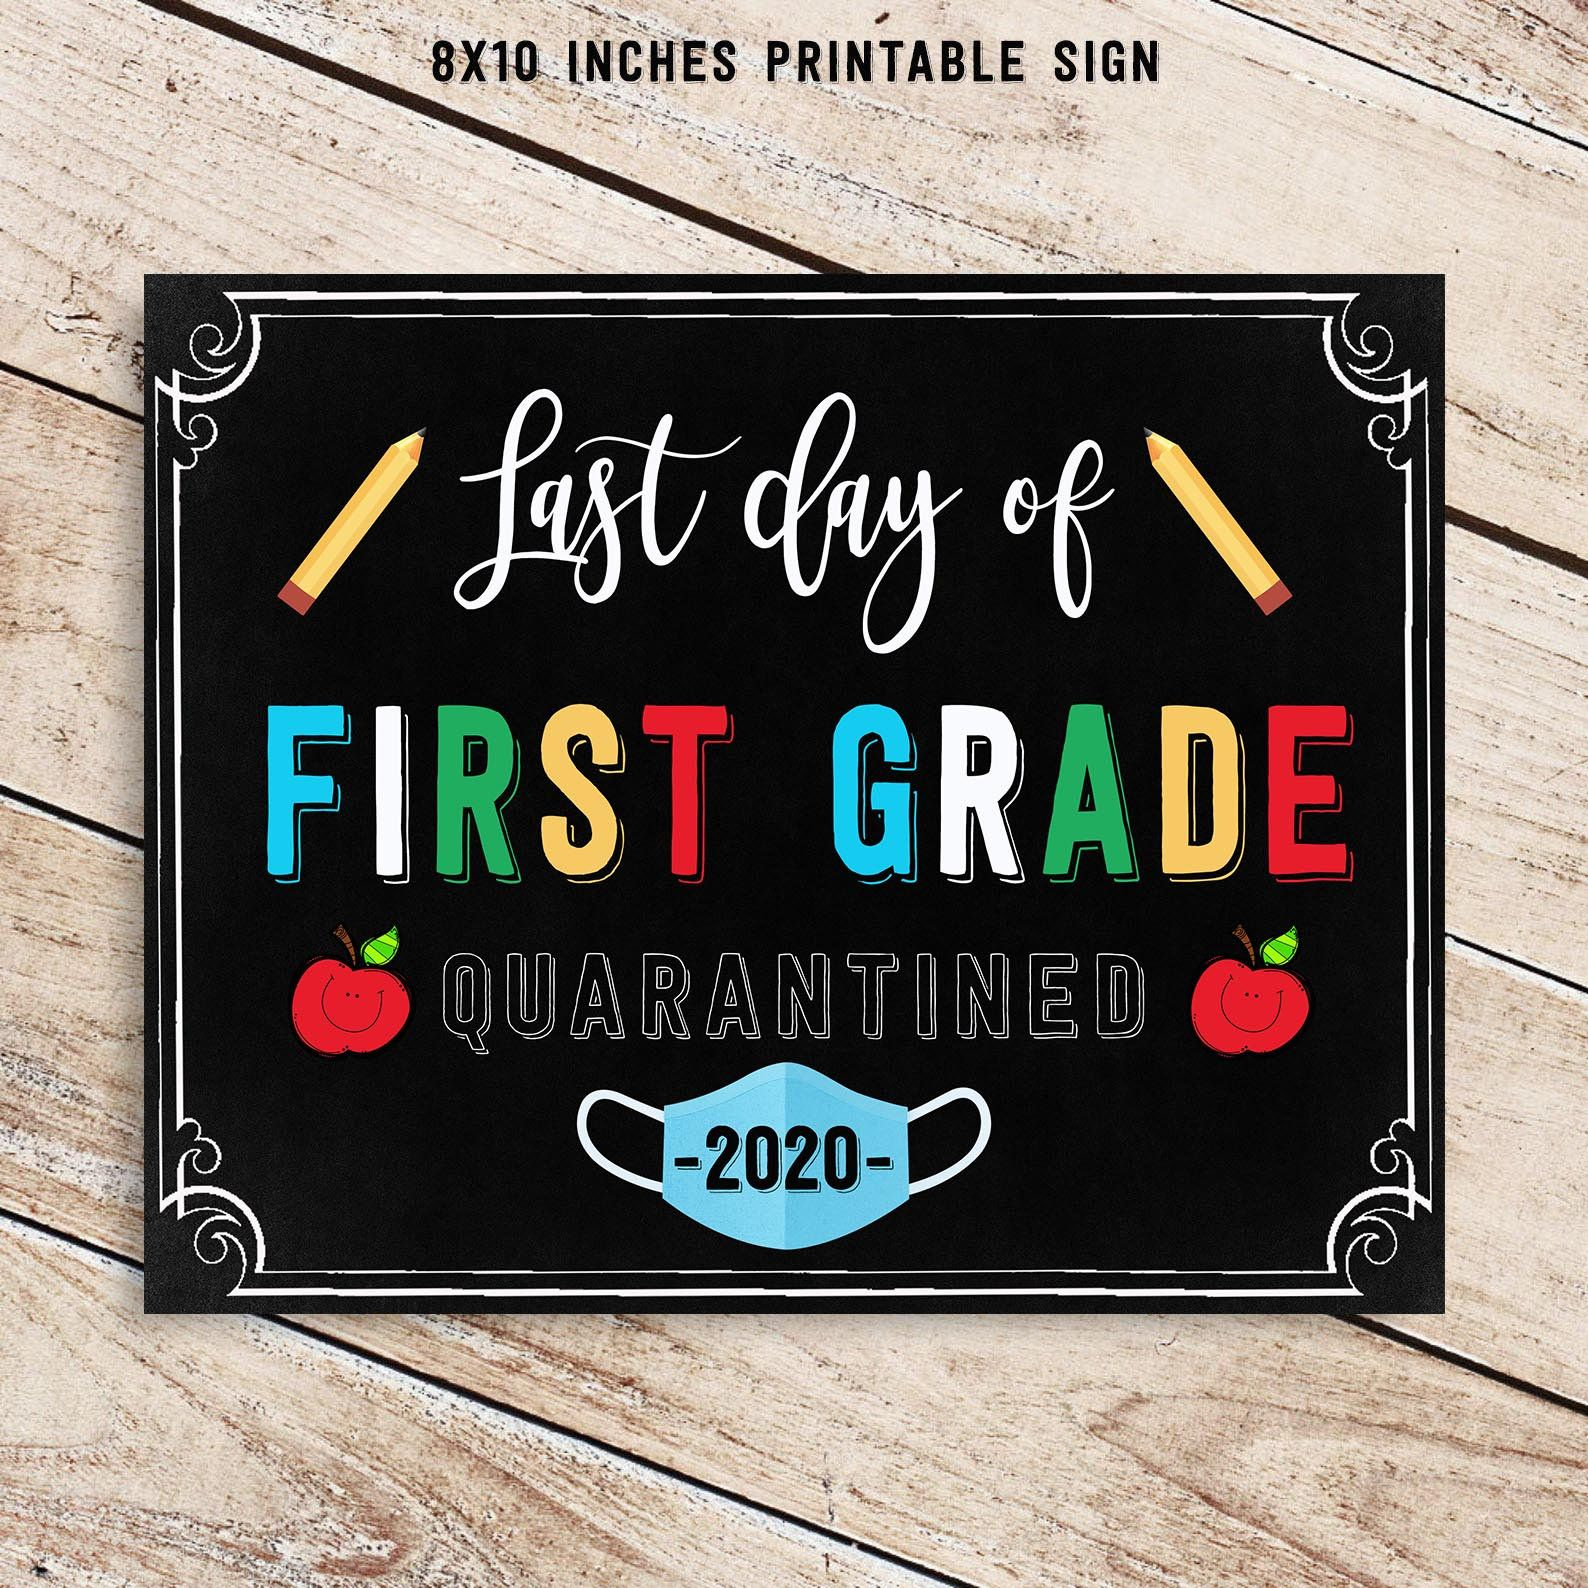 Last Day Of First Grade Quarantined Last Day Of 1st Grade 2020 Last Day Of School Sign Photo Props Kindergarten First Day Last Day Of School School Signs